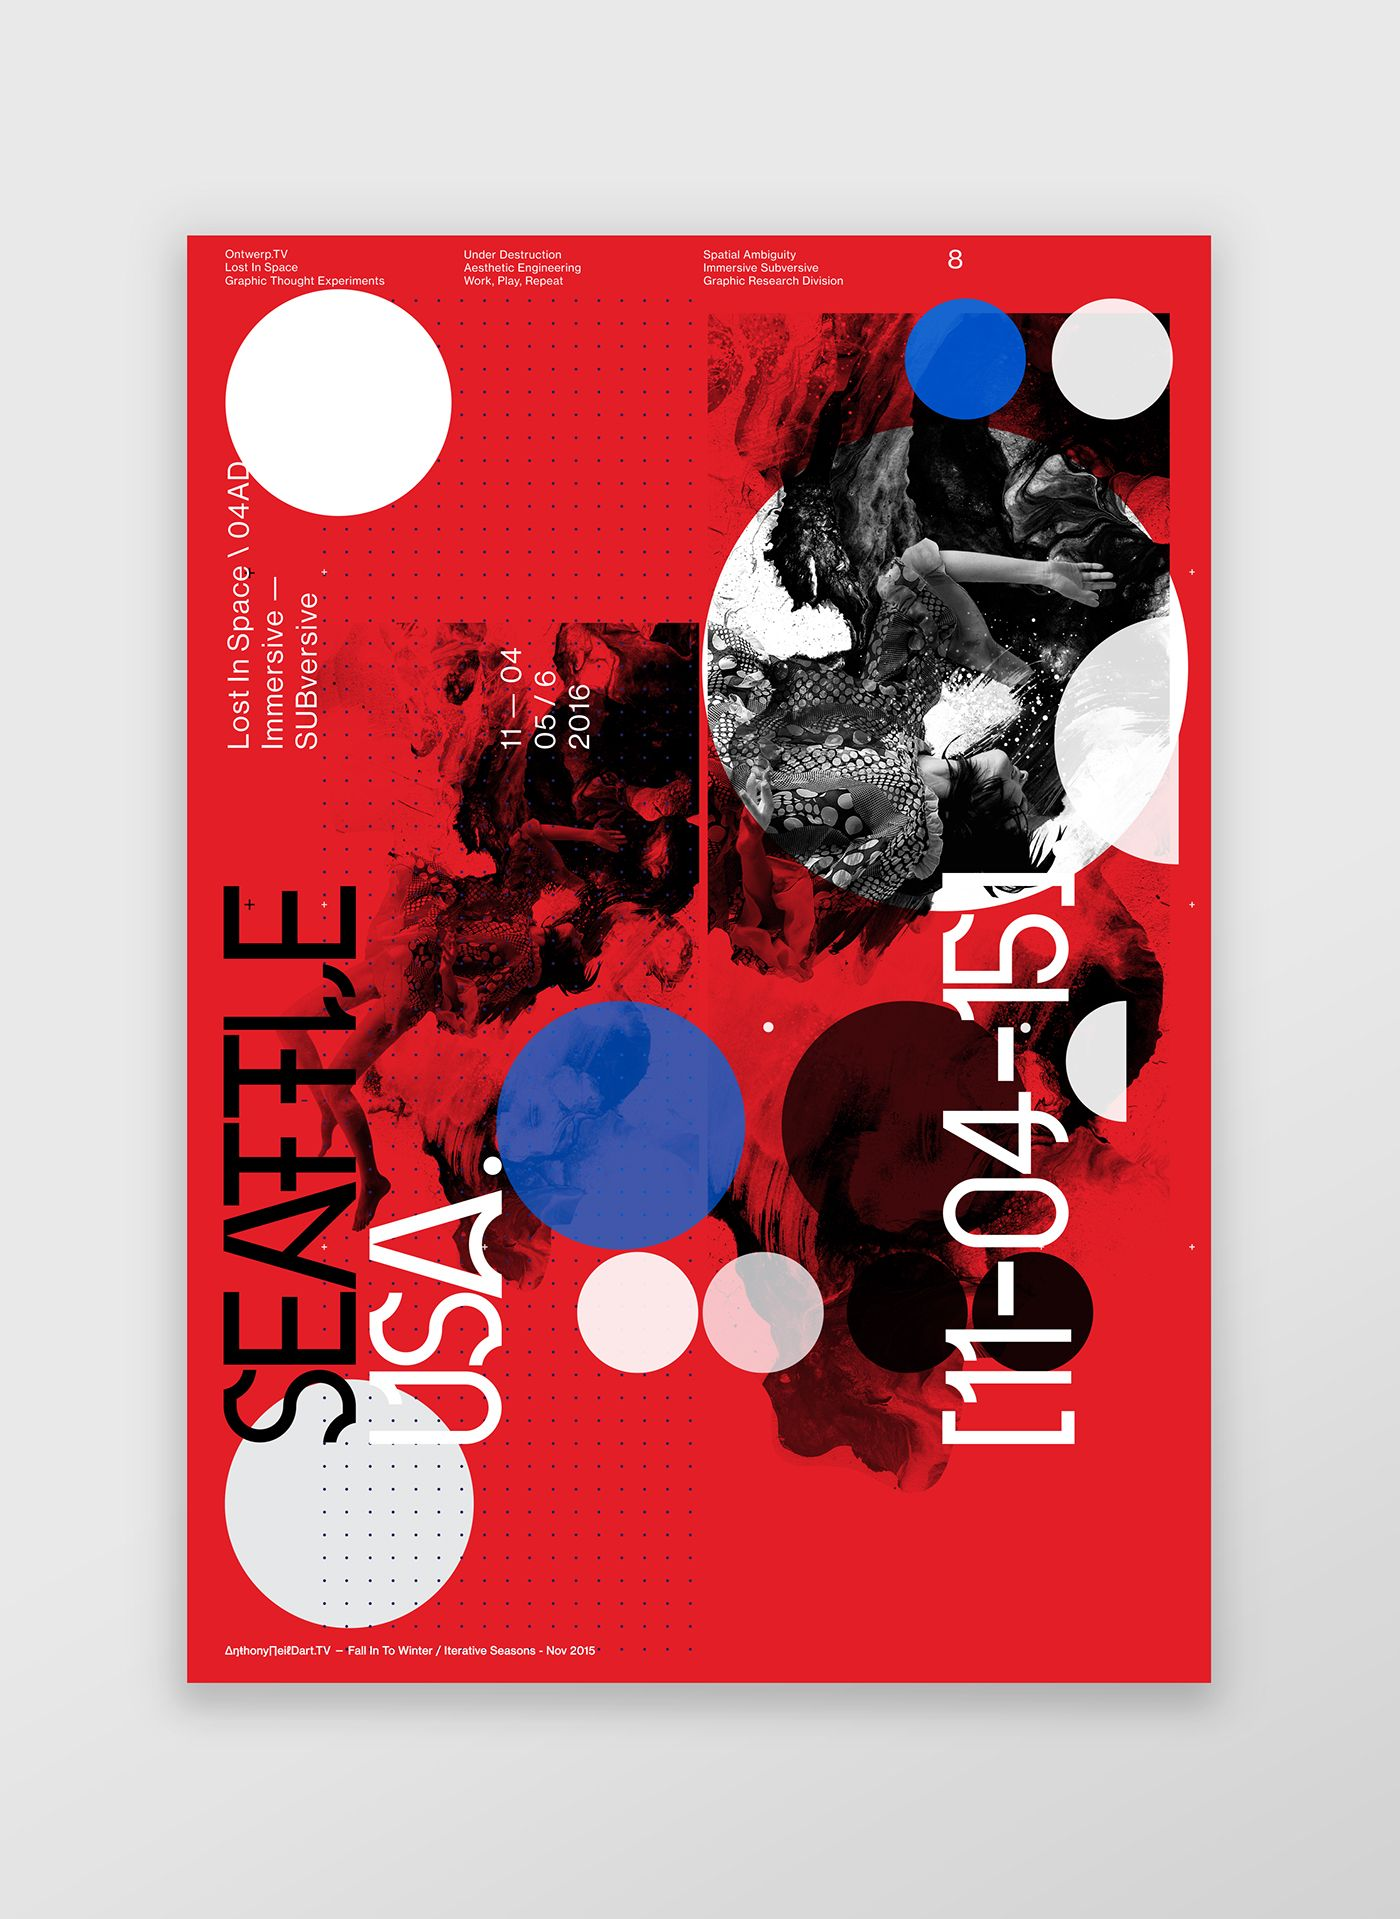 Popup Promo Poster Series Graphics Designed By Anthony Neil Dart Typography Graphic Poster Poster Design Inspiration